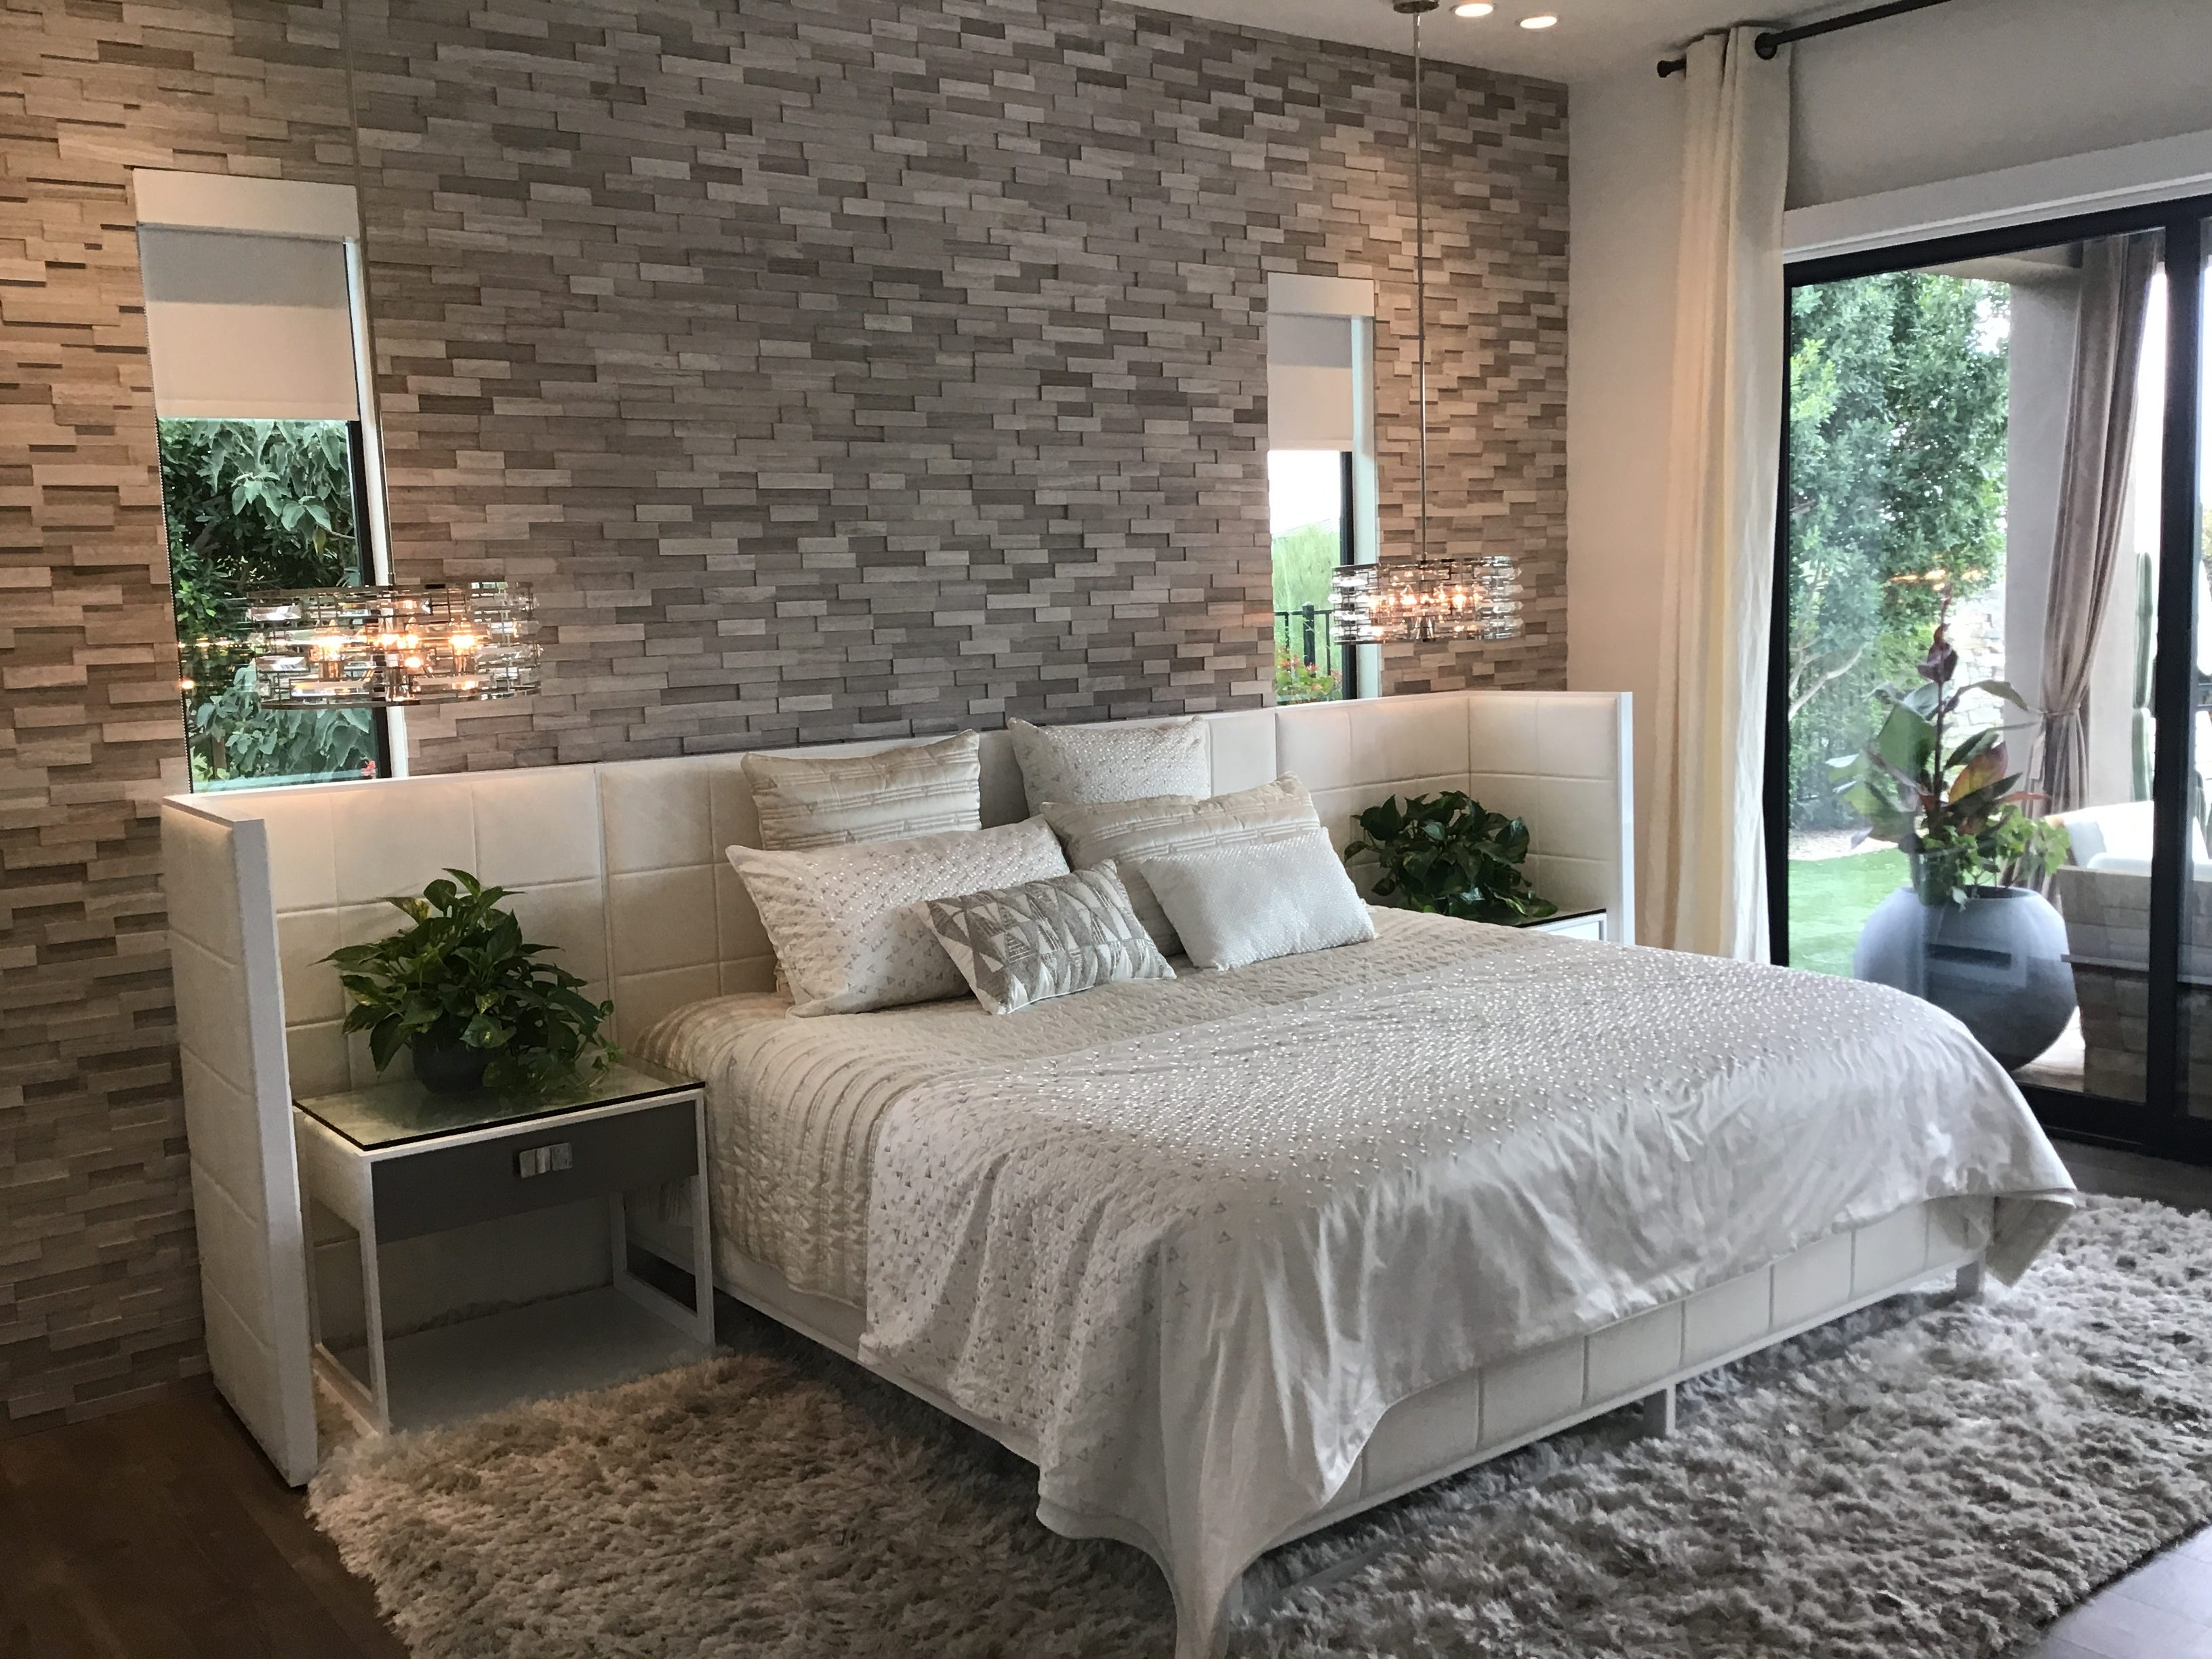 Kim Farrell, who wanted to be a designer when she was younger, chose all the finishes in the home, such as this stone wall.